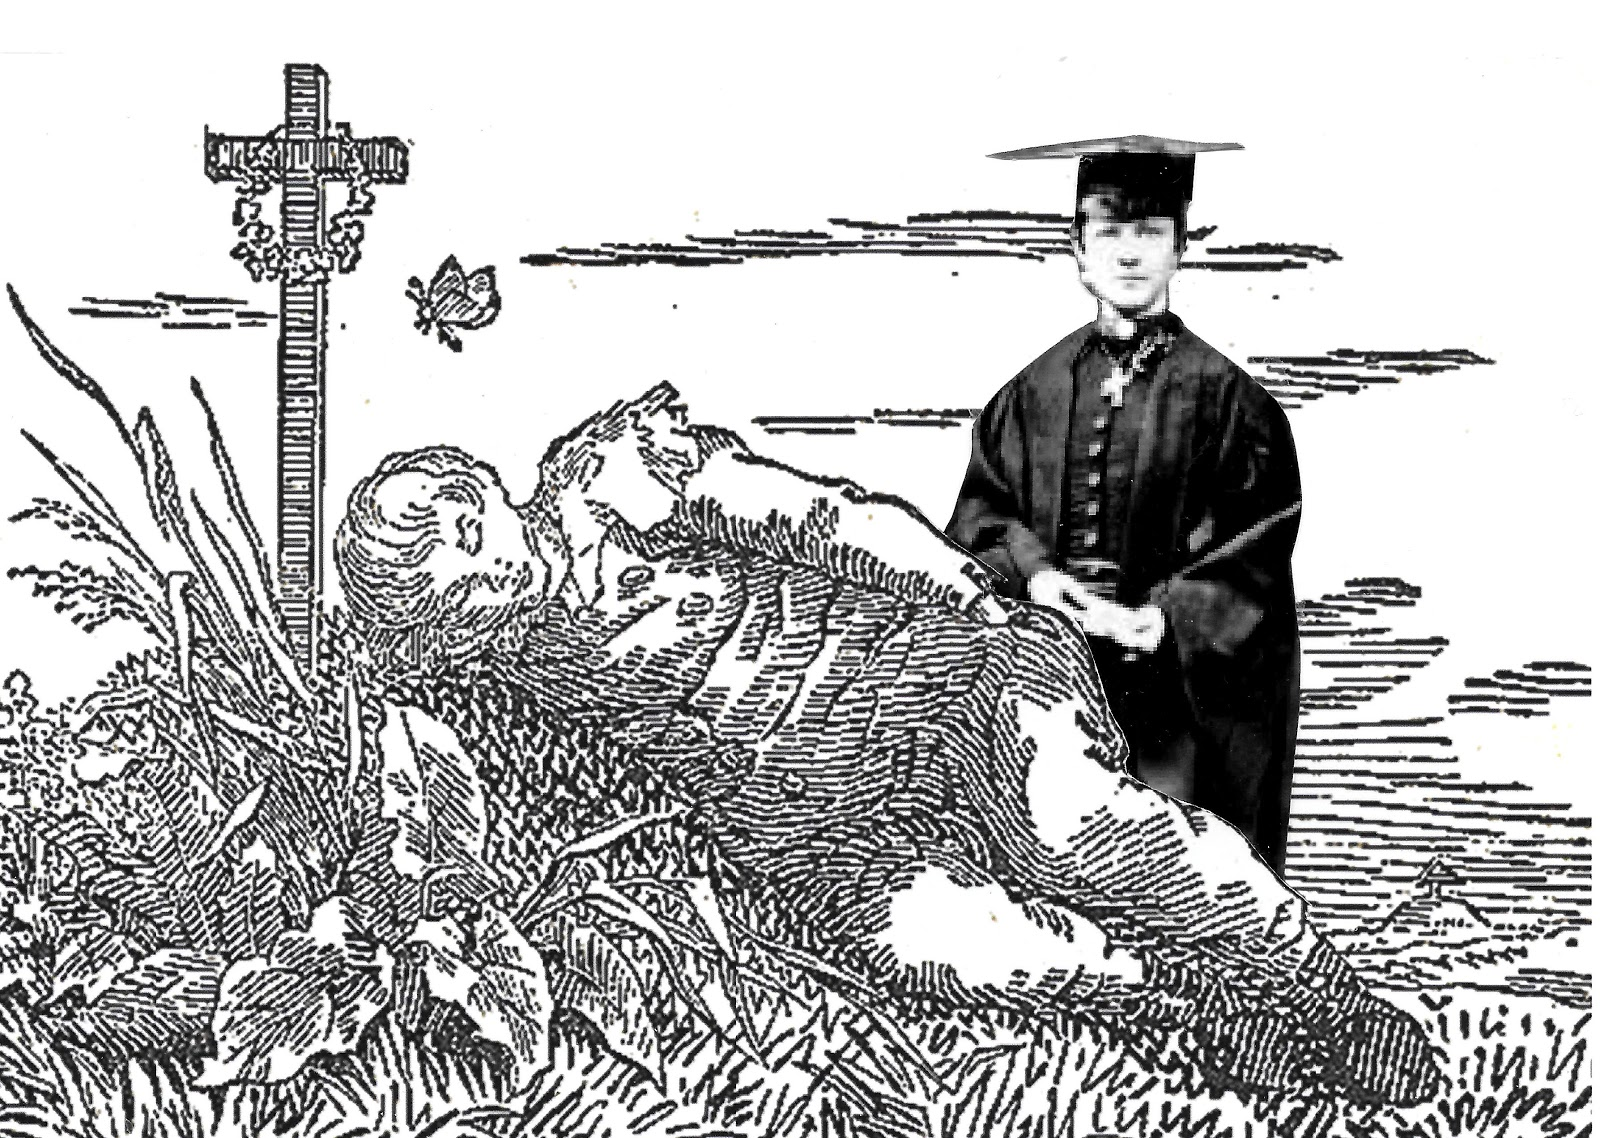 Political activist Bella Guerin wearing her academic regalia kneels next to a boy sleeping on a grave.